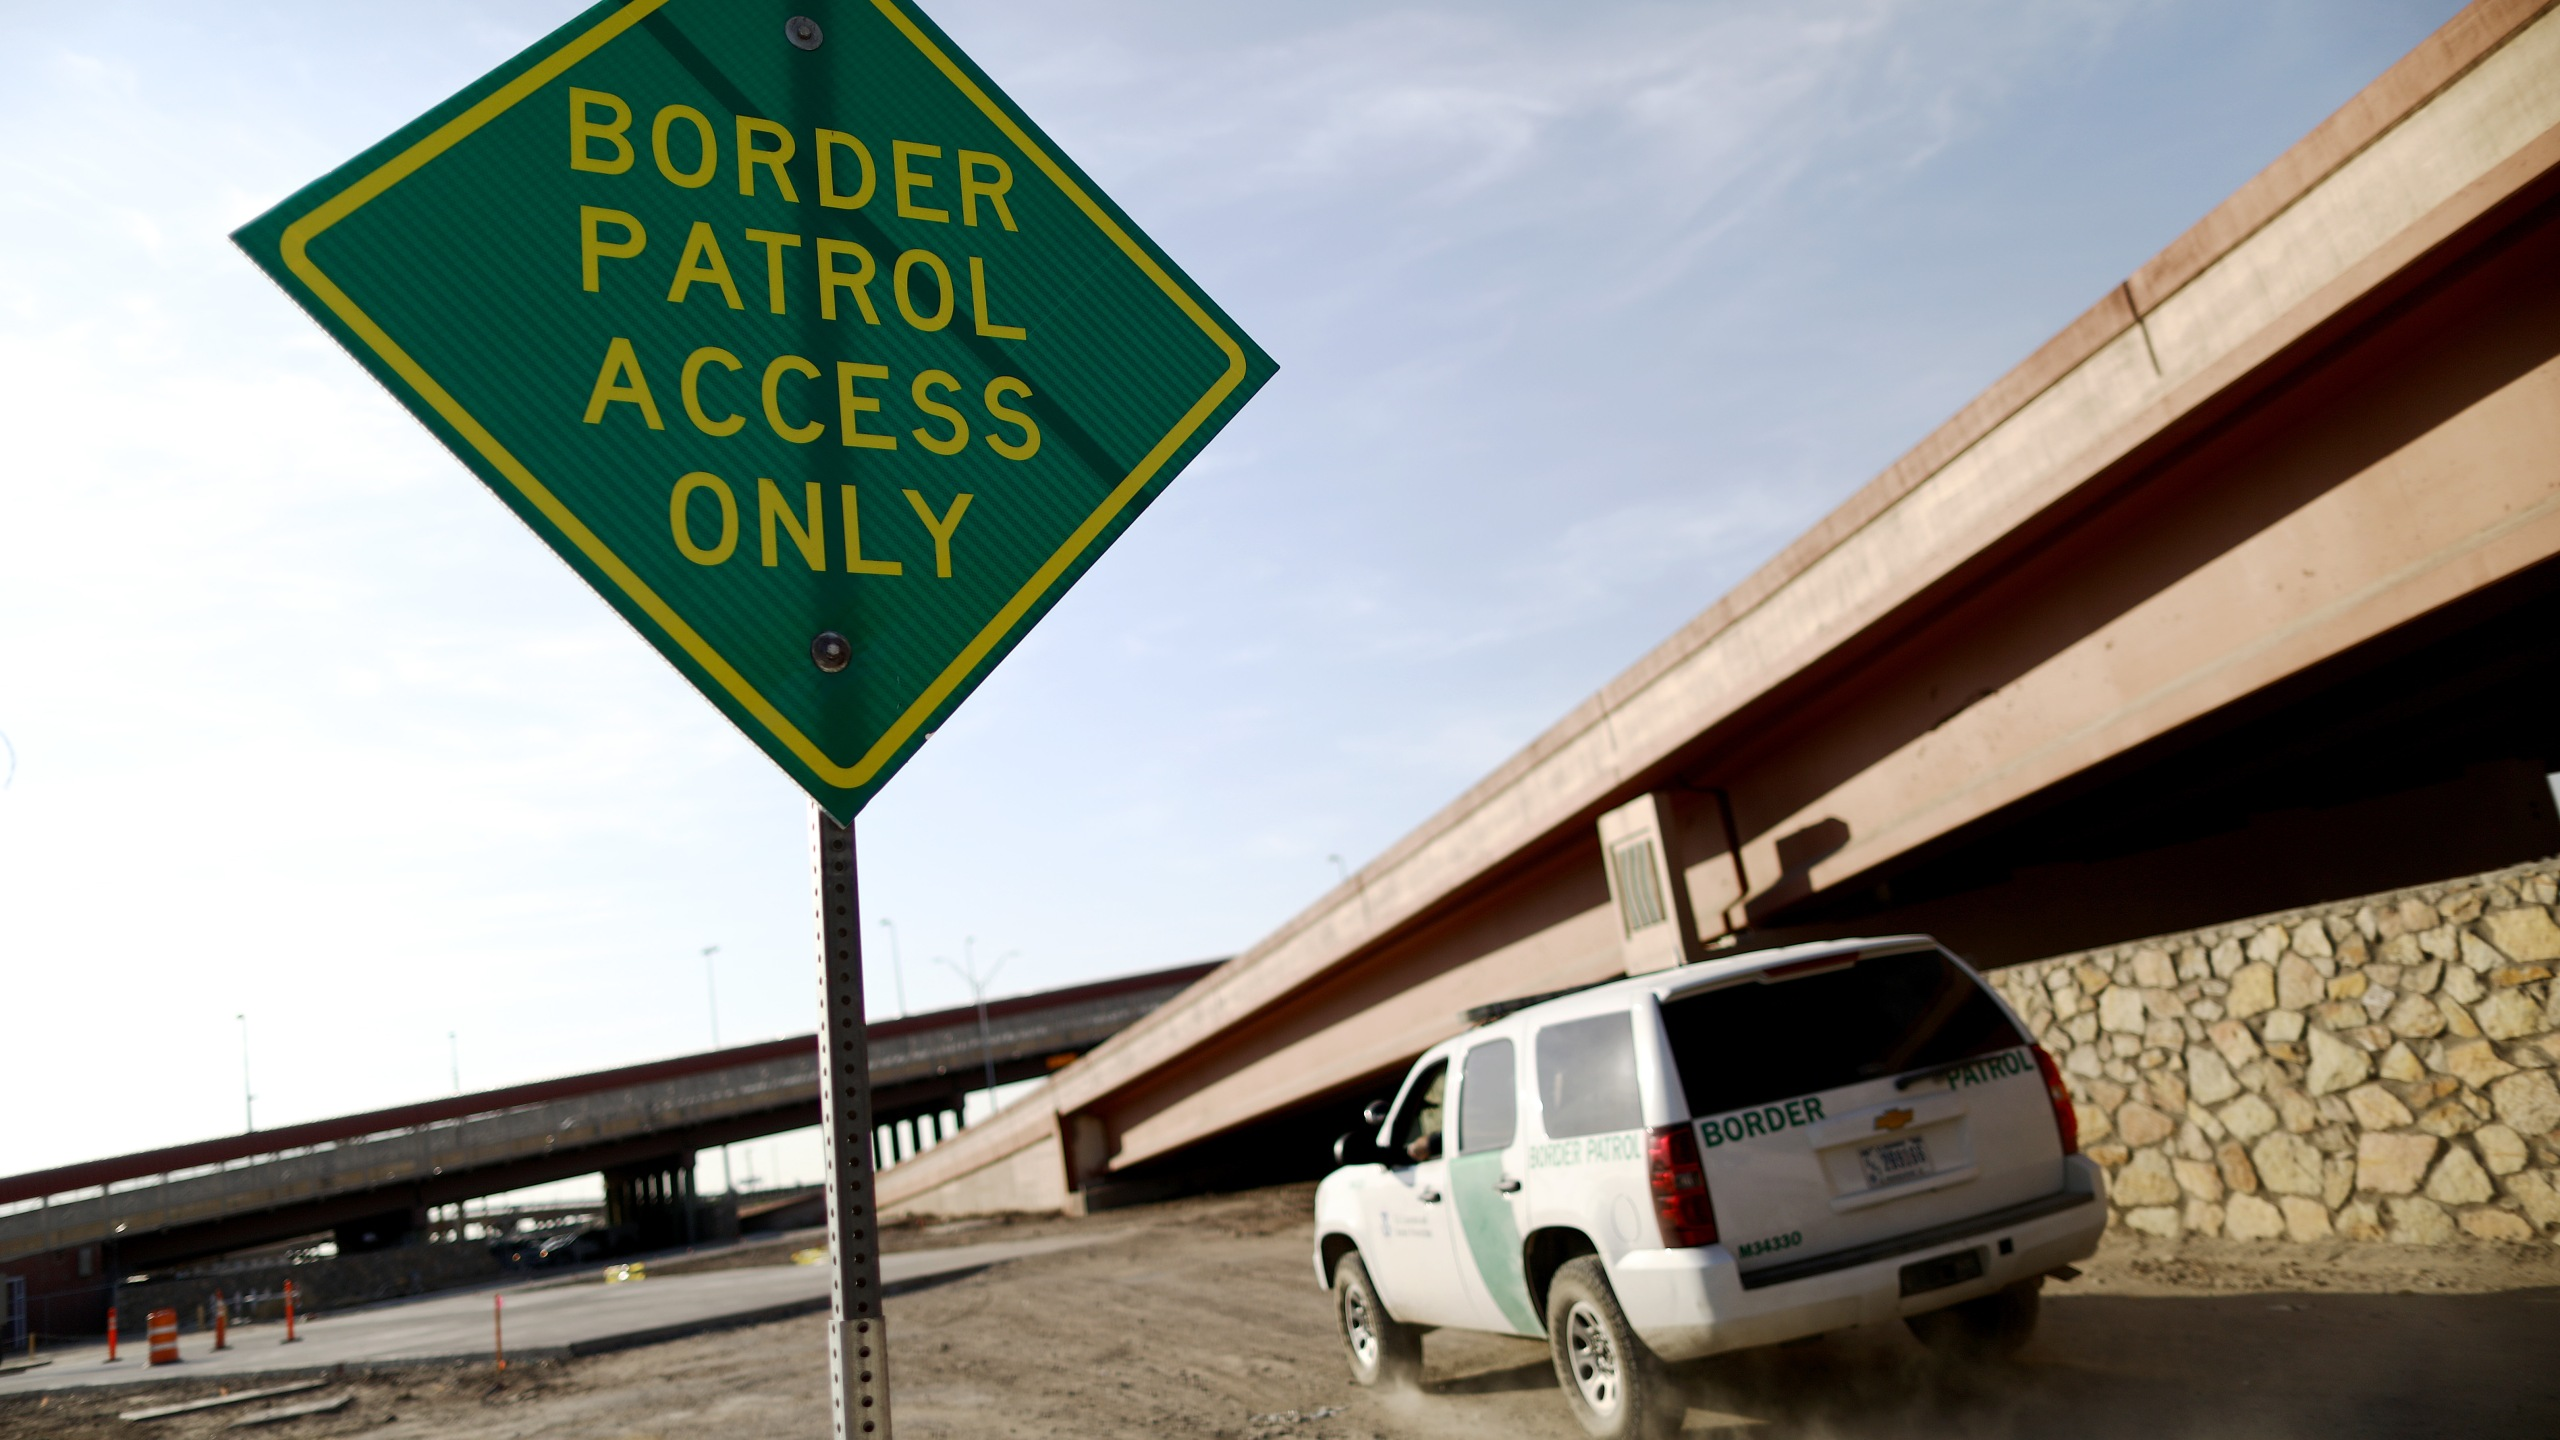 A U.S. Border Patrol vehicle passes a 'Border Patrol Access Only' sign near the U.S.-Mexico border on June 26, 2019, in El Paso, Texas. (Credit: Mario Tama/Getty Images)